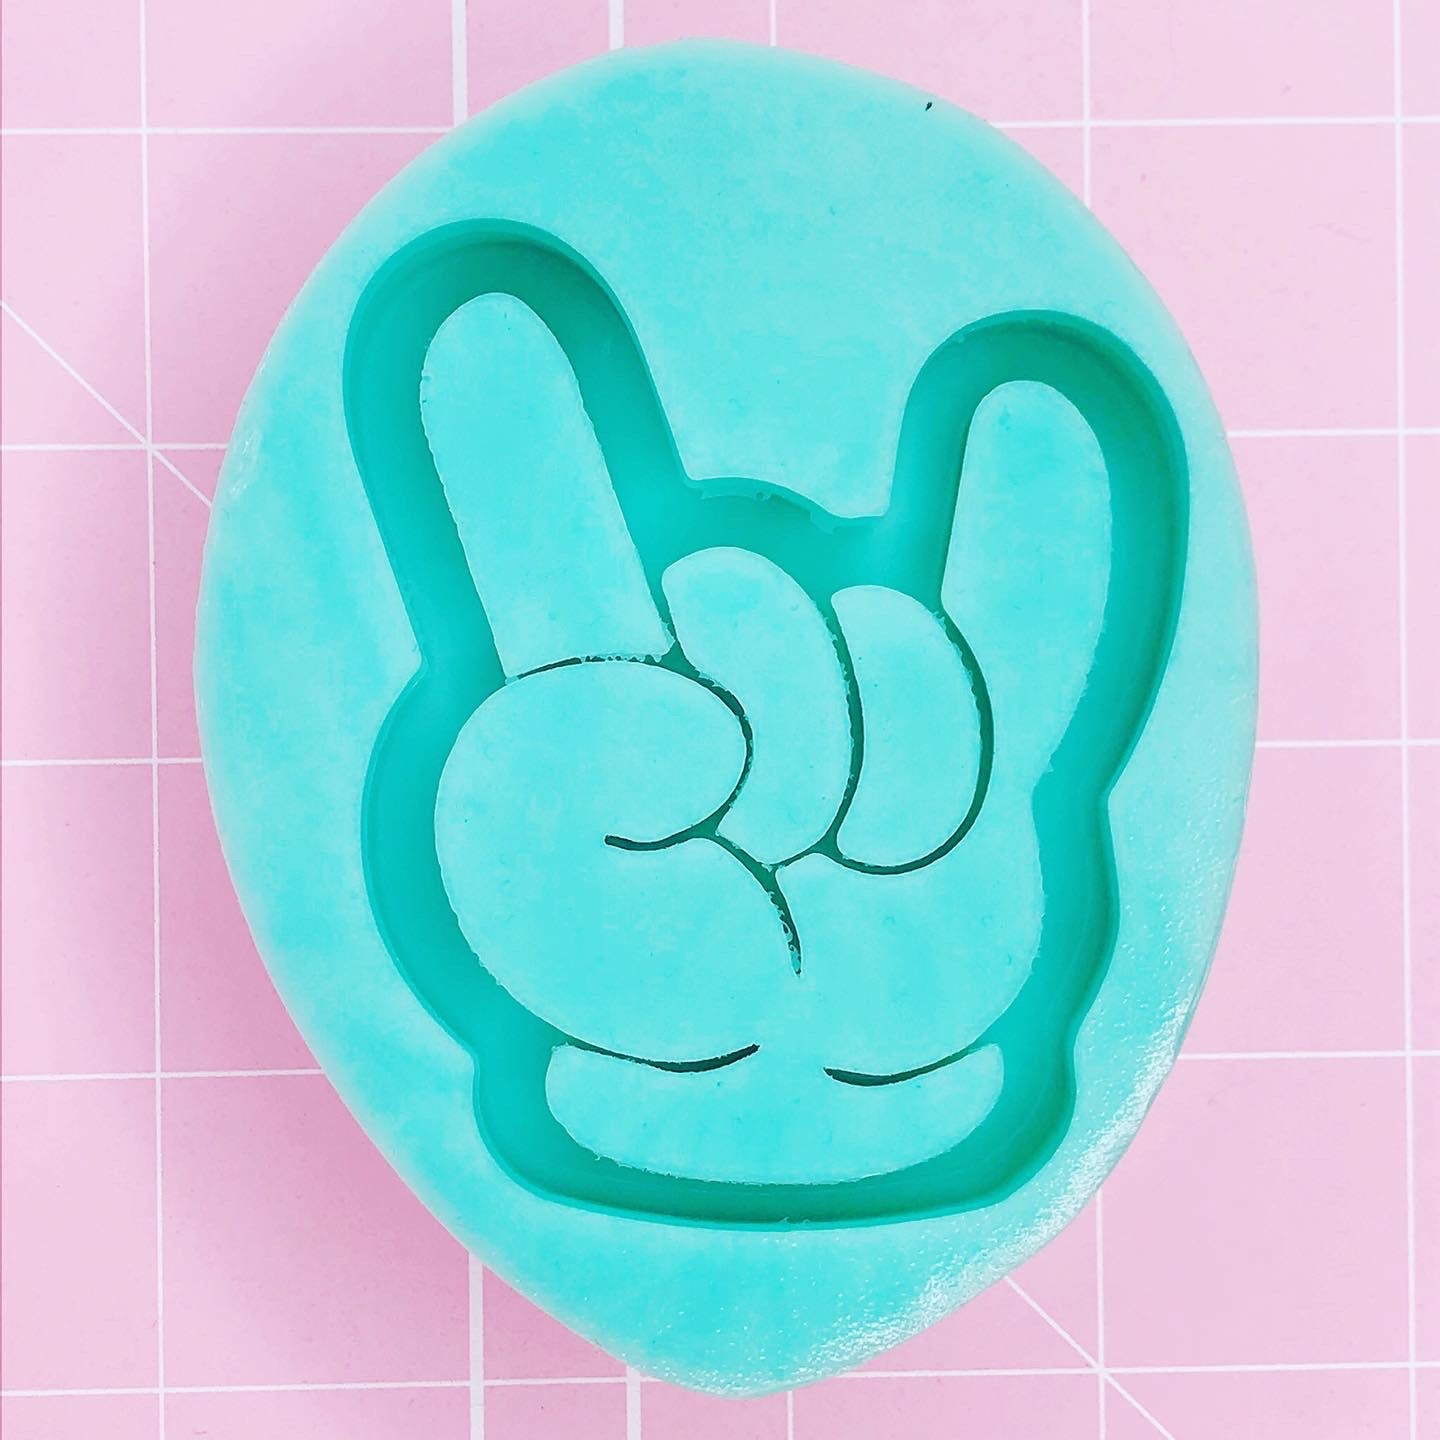 Teardrop Mold - Sign of the Horns / Rock On Hand (Backed Shaker) - Chala Atelier & Supplies